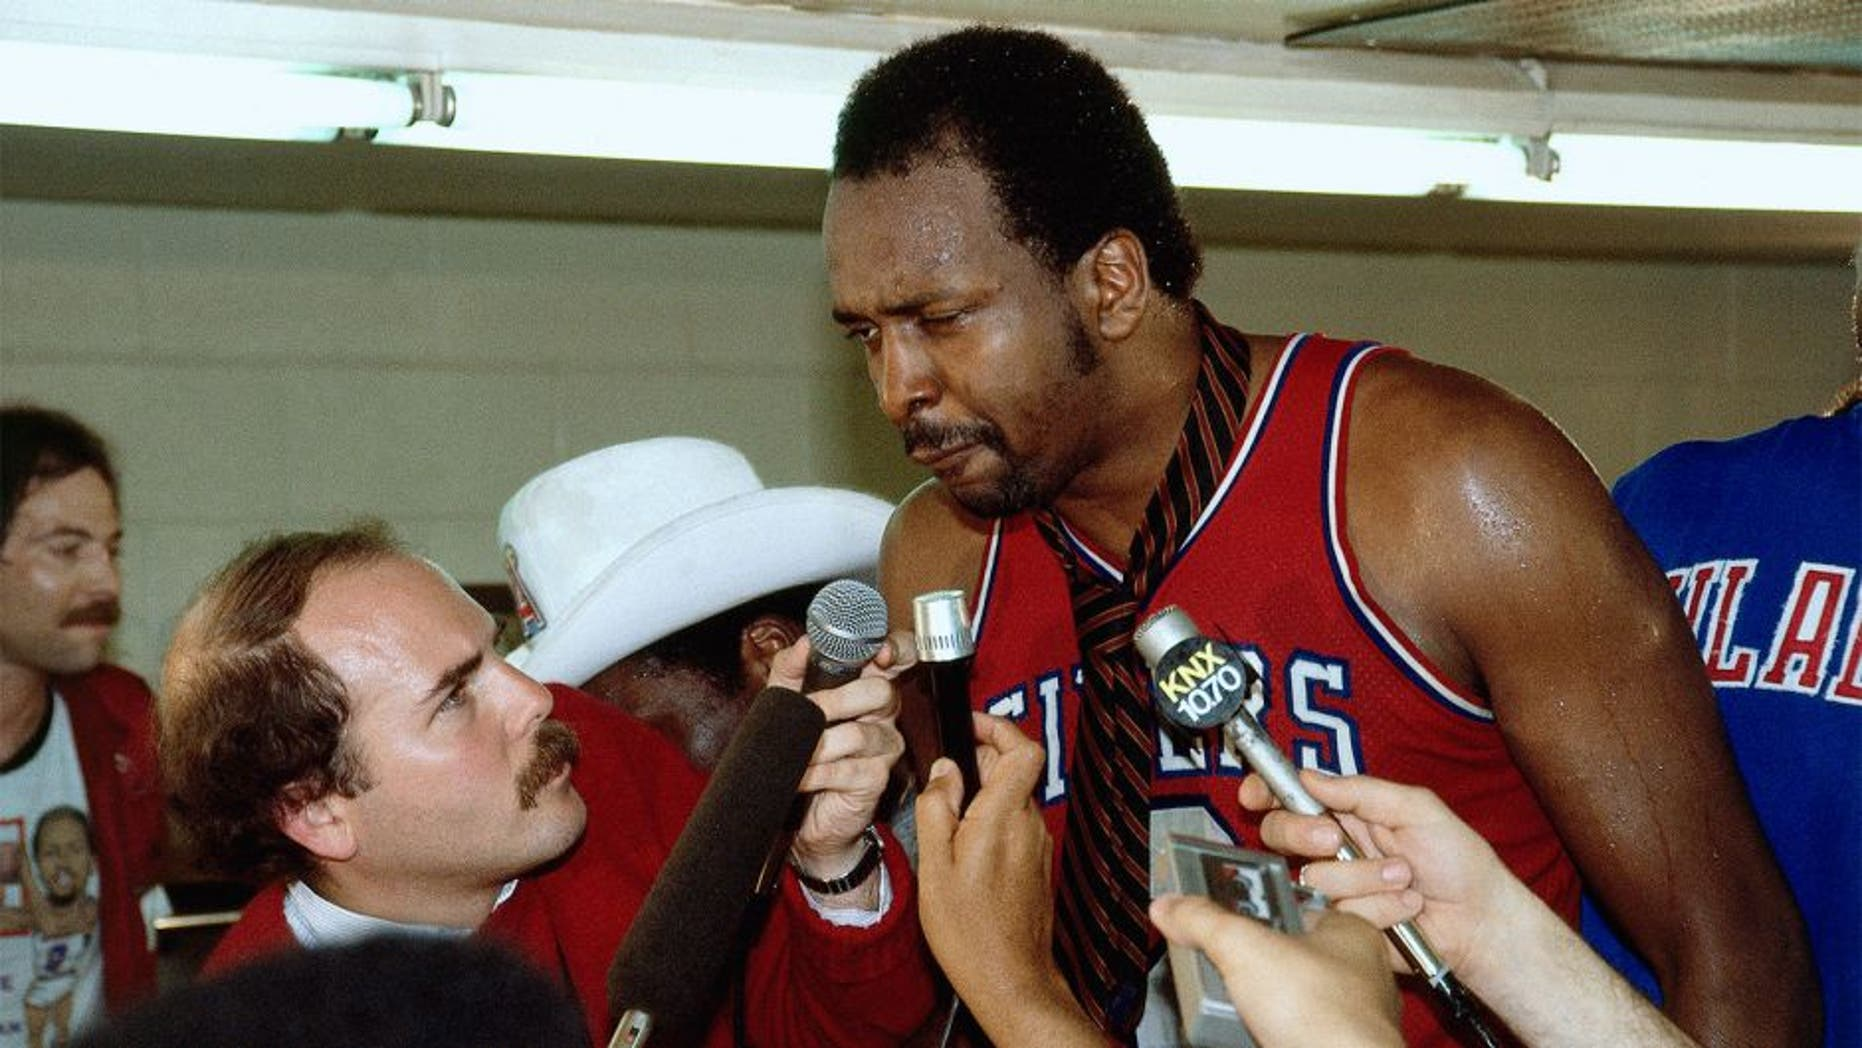 LOS ANGELES - 1983: Moses Malone #2 of the Philadelphia 76'ers gets interviewed by the media after winning the 1983 NBA Championship against the Los Angeles Lakers at the Forum in Los Angleles, California. NOTE TO USER: User expressly acknowledges and agrees that, by downloading and or using this photograph, User is consenting to the terms and conditions of the Getty Images License Agreement. (Photo by Andrew D. Bernstein/ NBAE/ Getty Images)